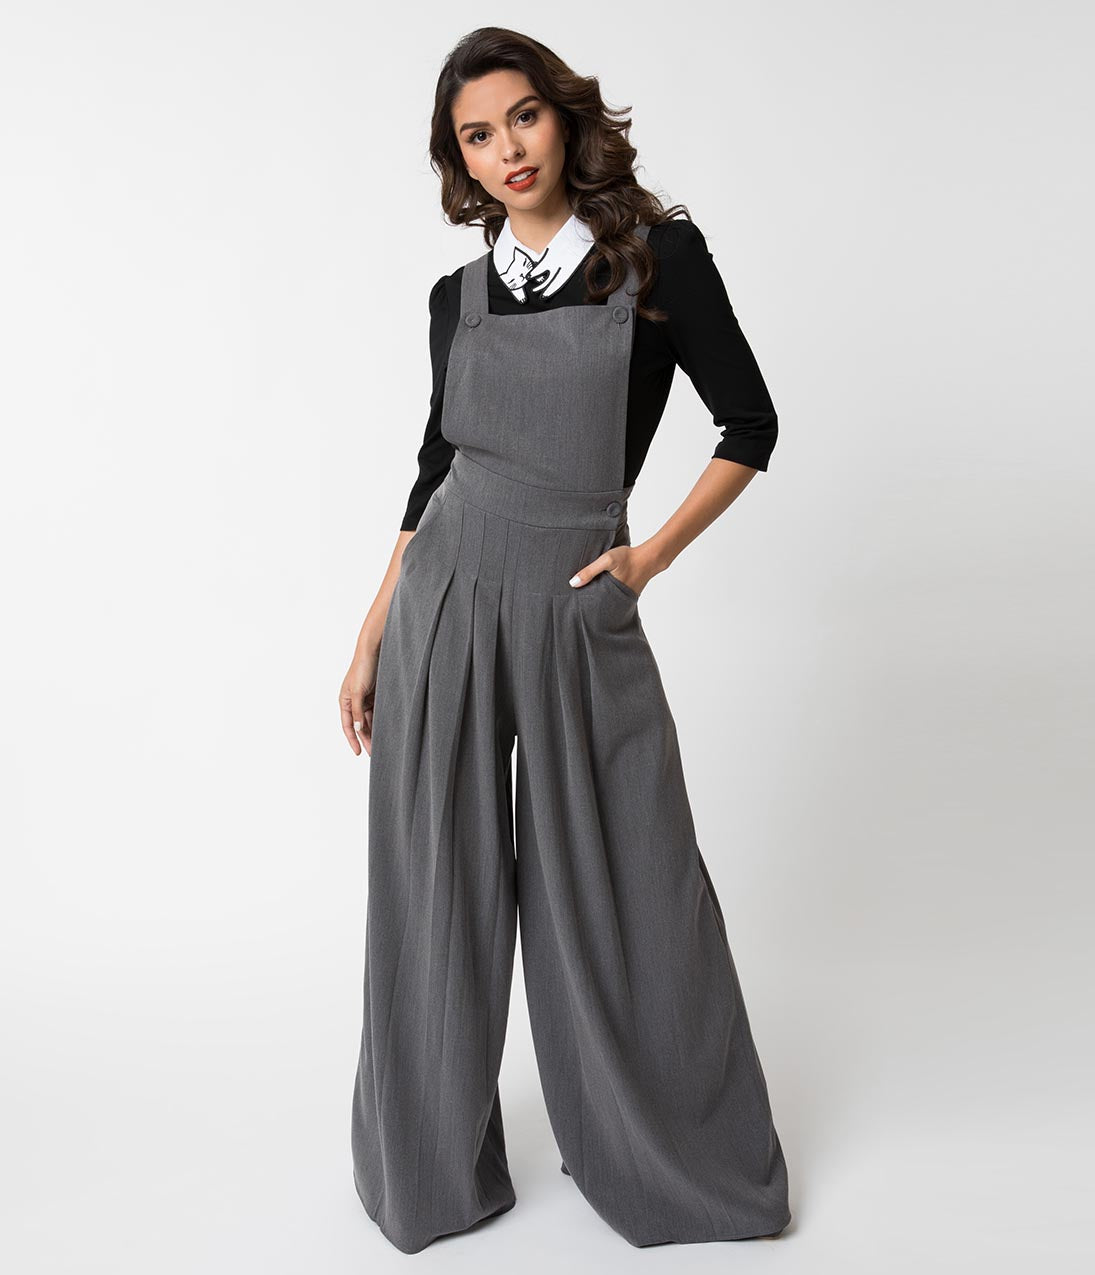 Vintage High Waisted Trousers, Sailor Pants, Jeans Miss Candy Floss 1940S Grey Tailored Wide Leg Nina Dungarees $128.00 AT vintagedancer.com